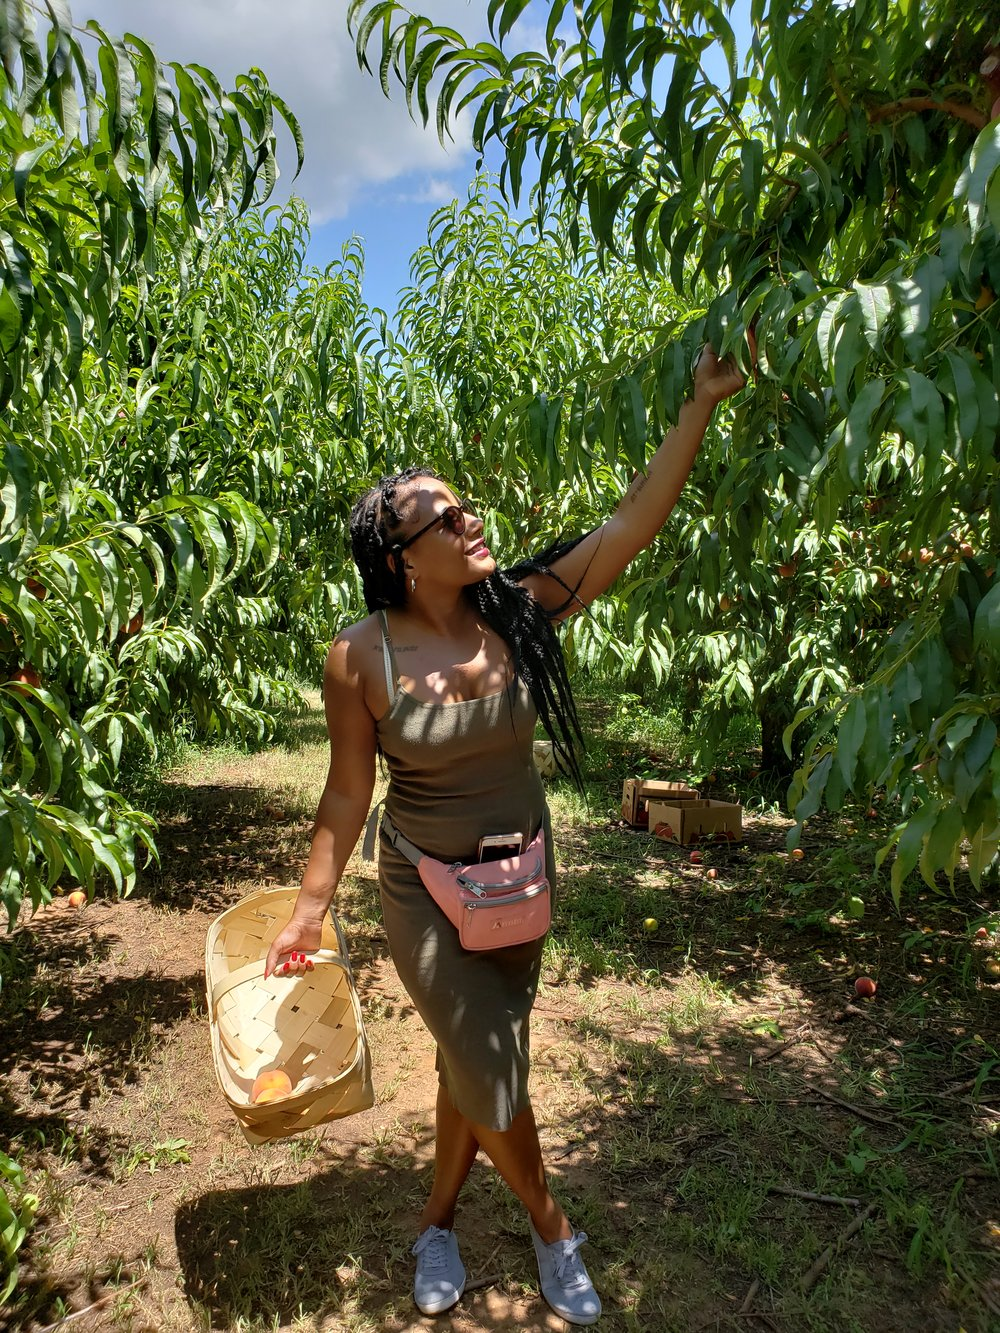 Picking Peaches At Southern Belle Farm | Georgia - Walking through the vineyards to pick peaches and then hanging out in the barn with the goats and cows, I almost thought that I was ready to risk it all... All meaning, my city life for the farm life! Can a city girl survive in the country, farm life? Possibly!